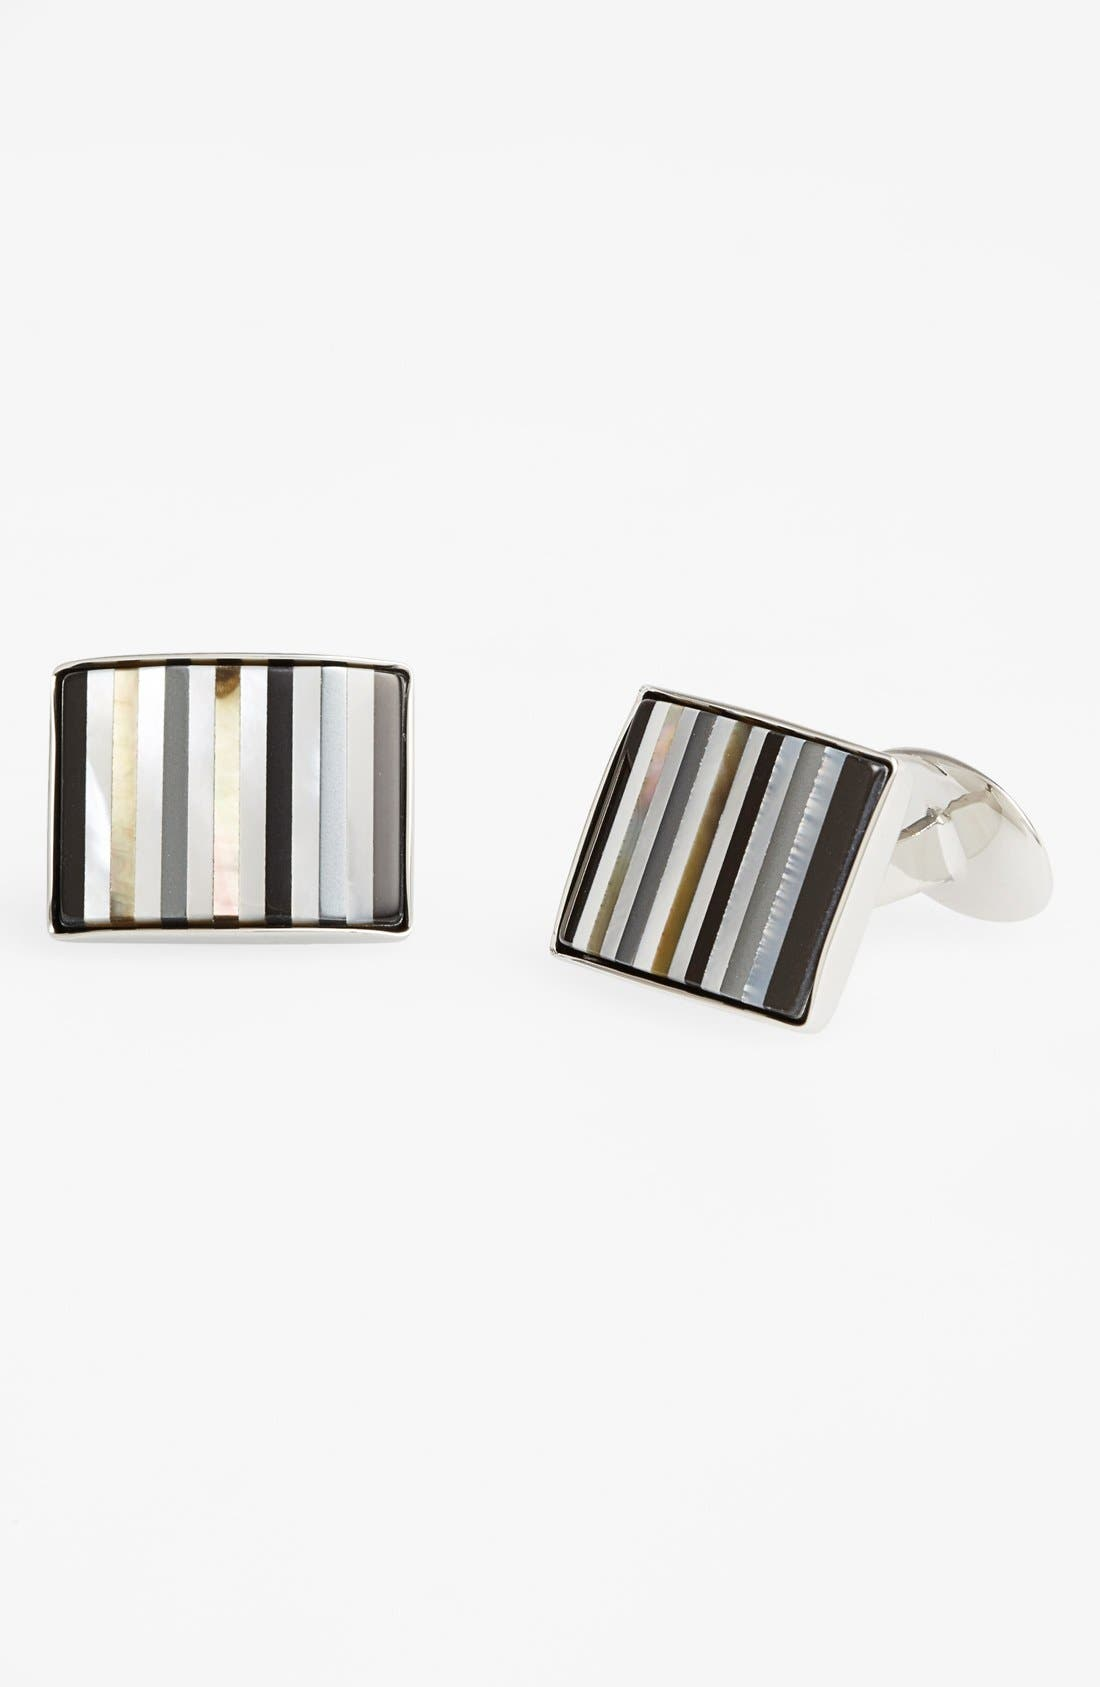 DAVID DONAHUE Semiprecious Cuff Links